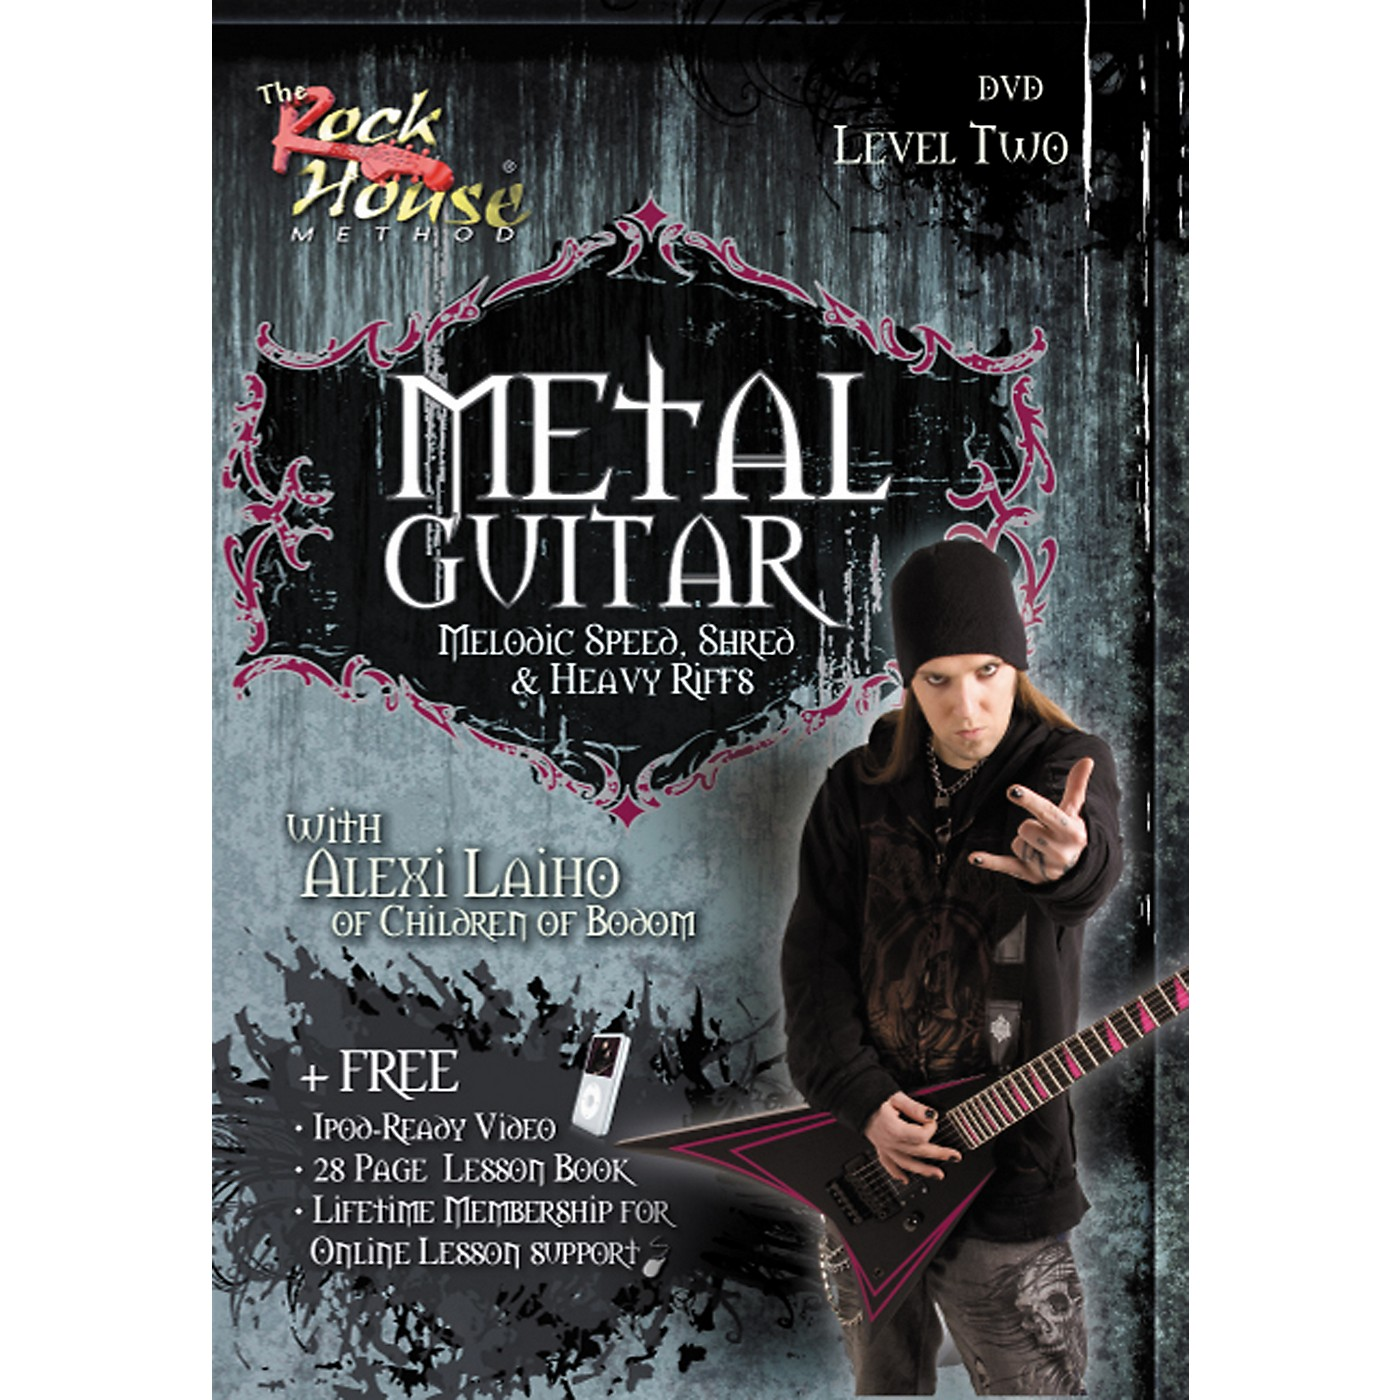 Hal Leonard Metal Guitar Melodic Speed, Shred & Heavy Riffs Level 2 With Alexi Laiho of Children of Bodom DVD thumbnail